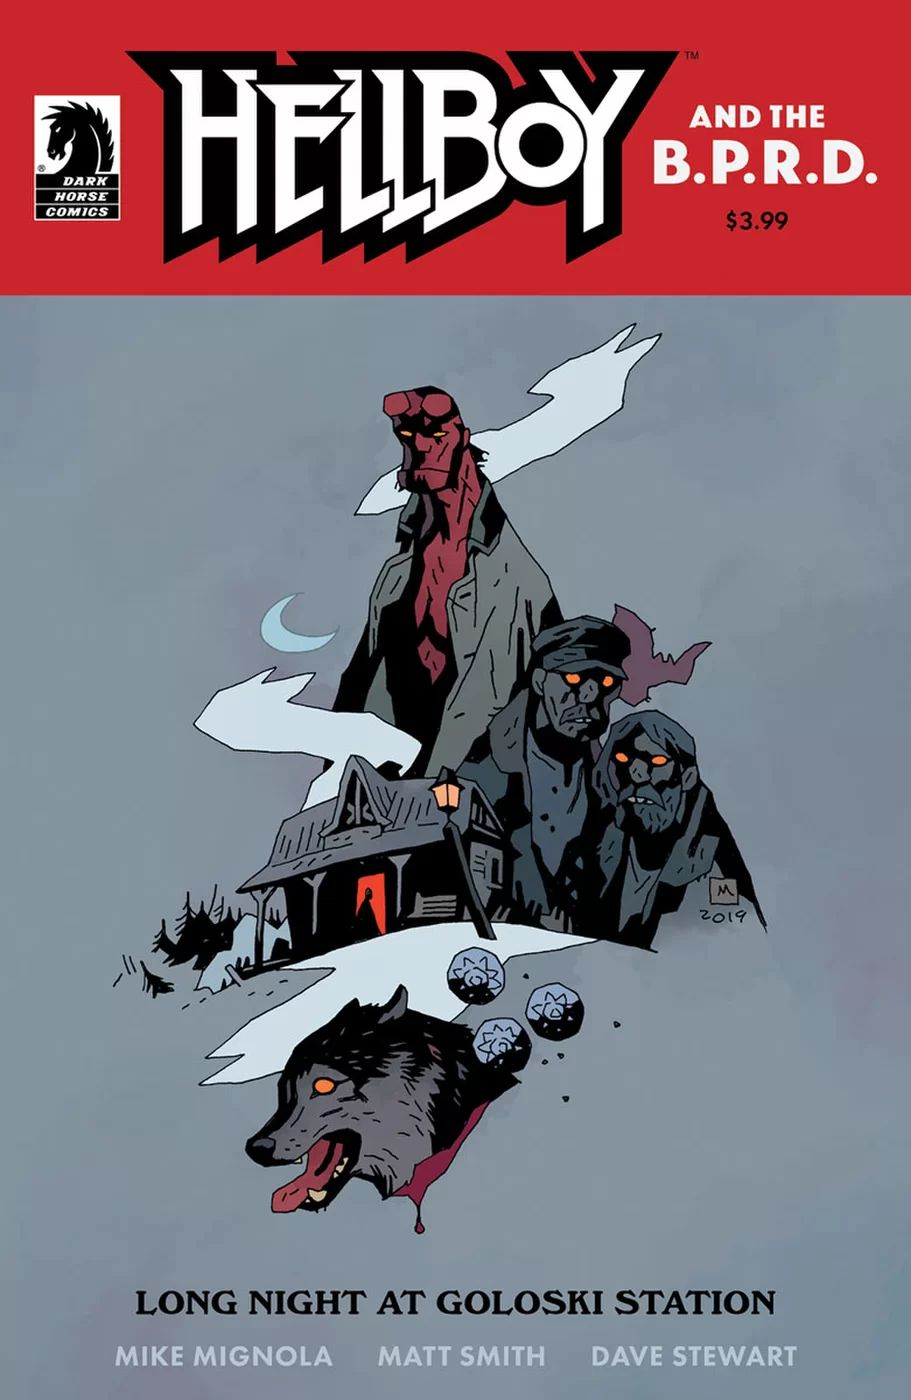 Hellboy and the B.P.R.D.: Long Night at Goloski Station